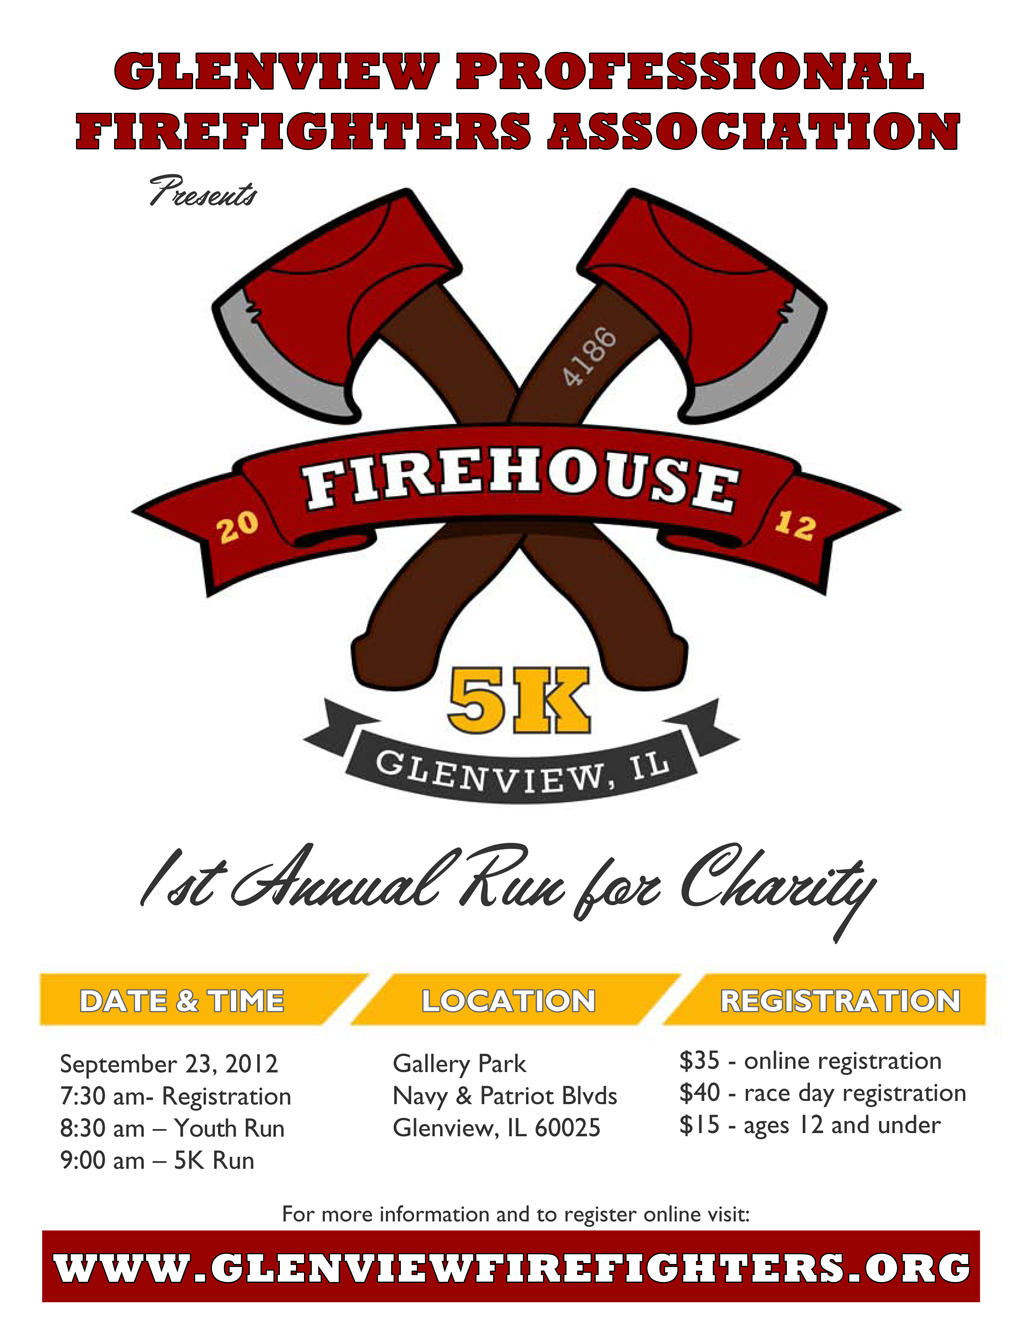 Glenview Firefighters Local 4186 firehouse 5K on 9/23/12